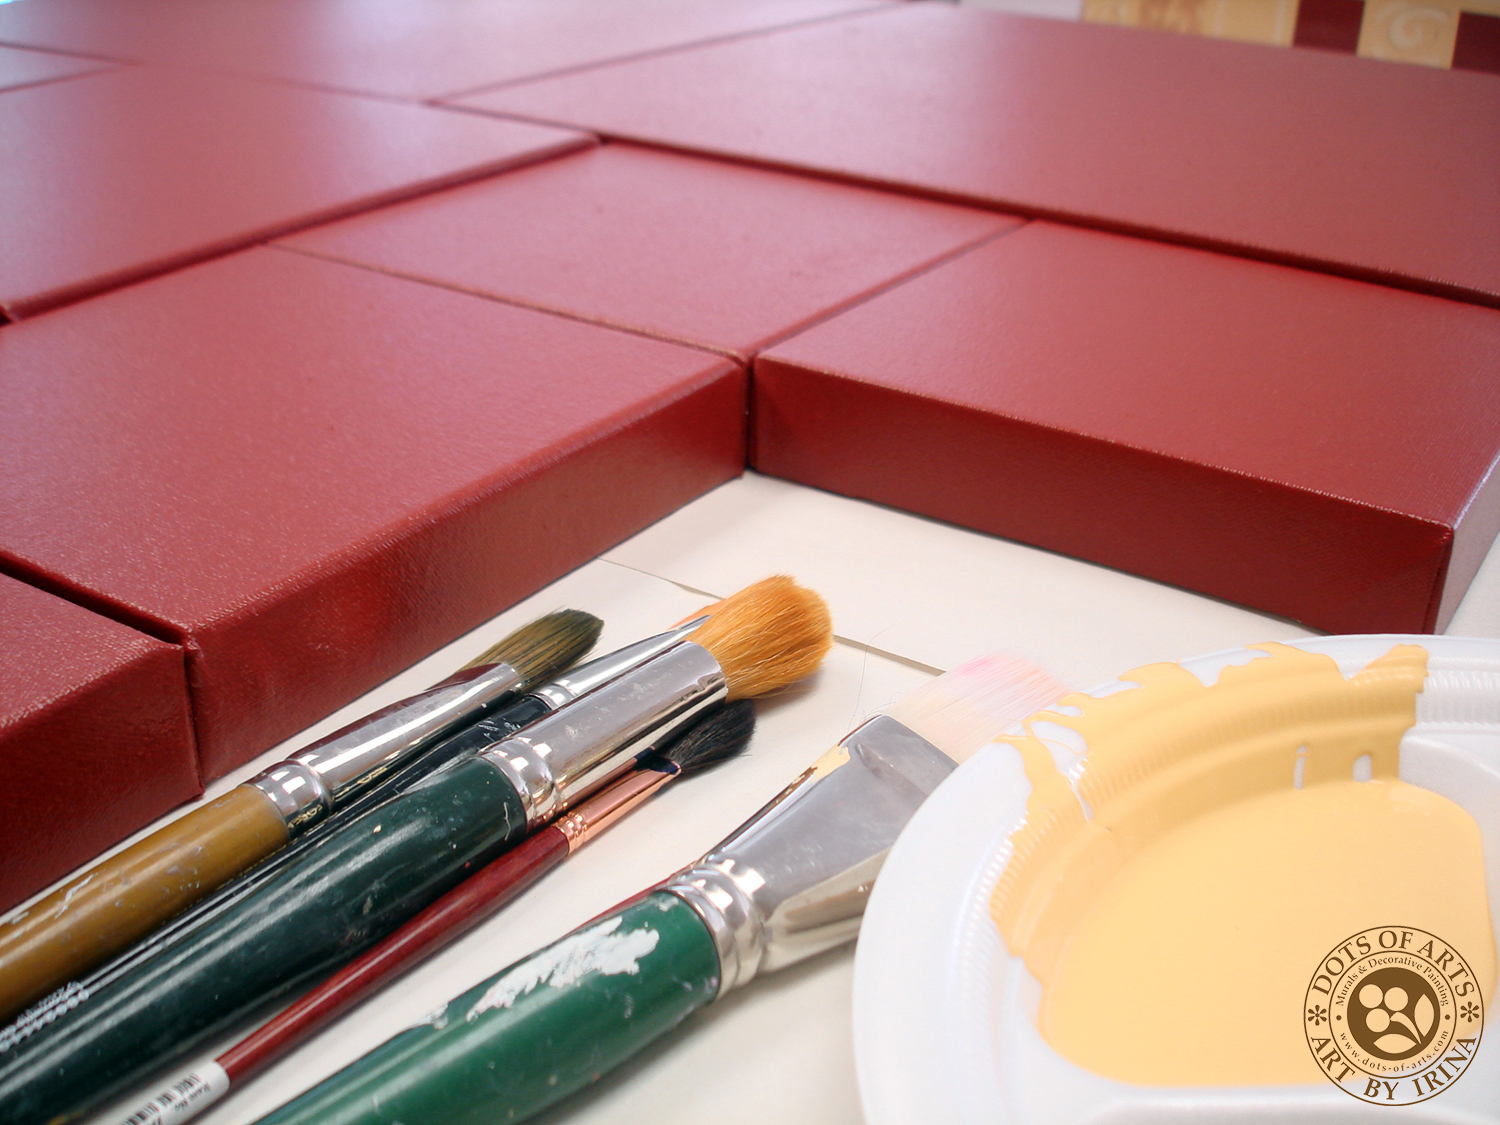 decorative-painting-canvases-custom-dots-of-arts-accessories-set-paint-brushes.jpg